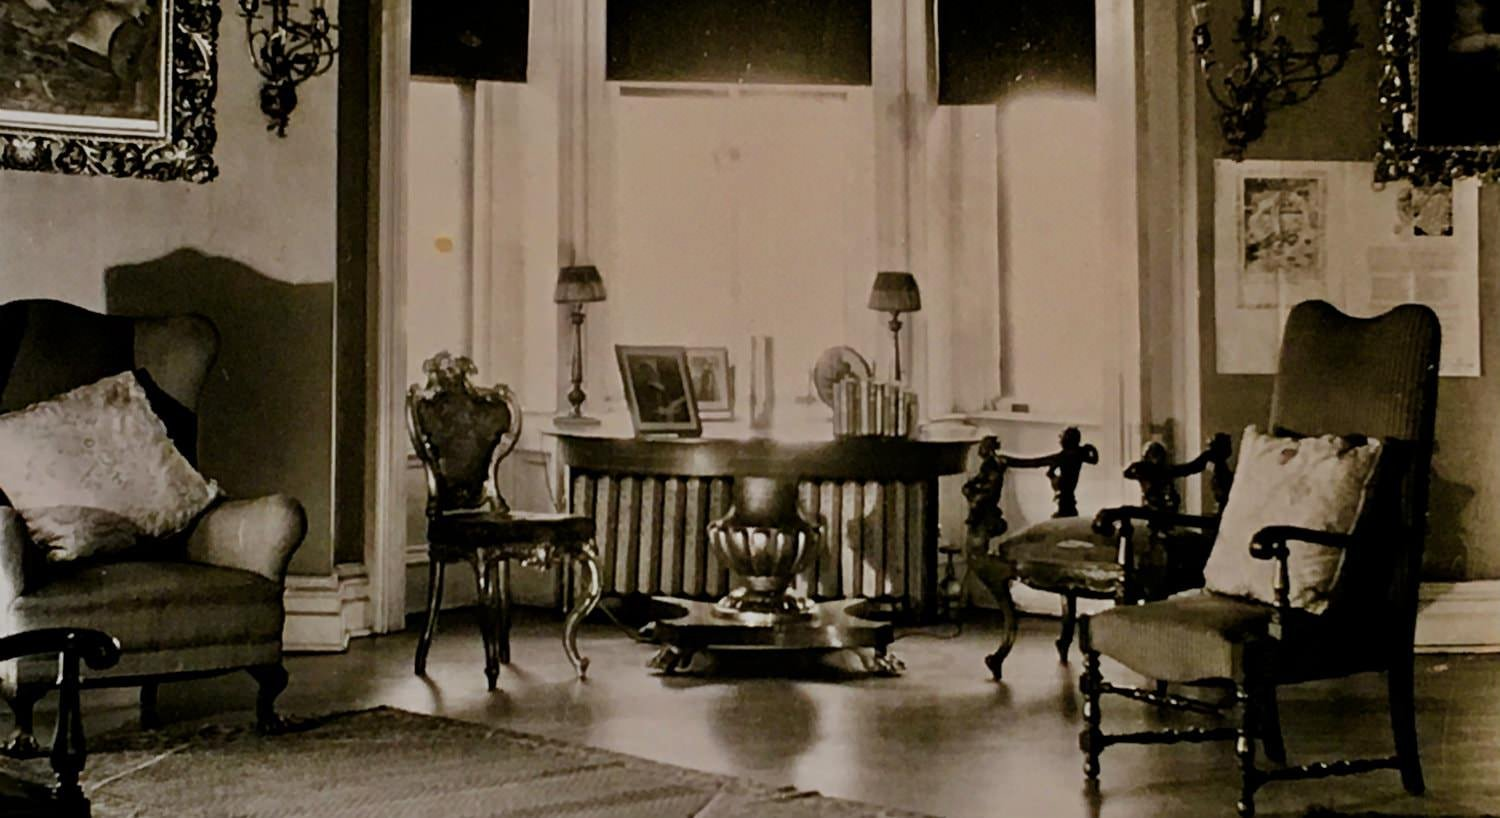 Old black and white photo of round table and chairs in front of bay window